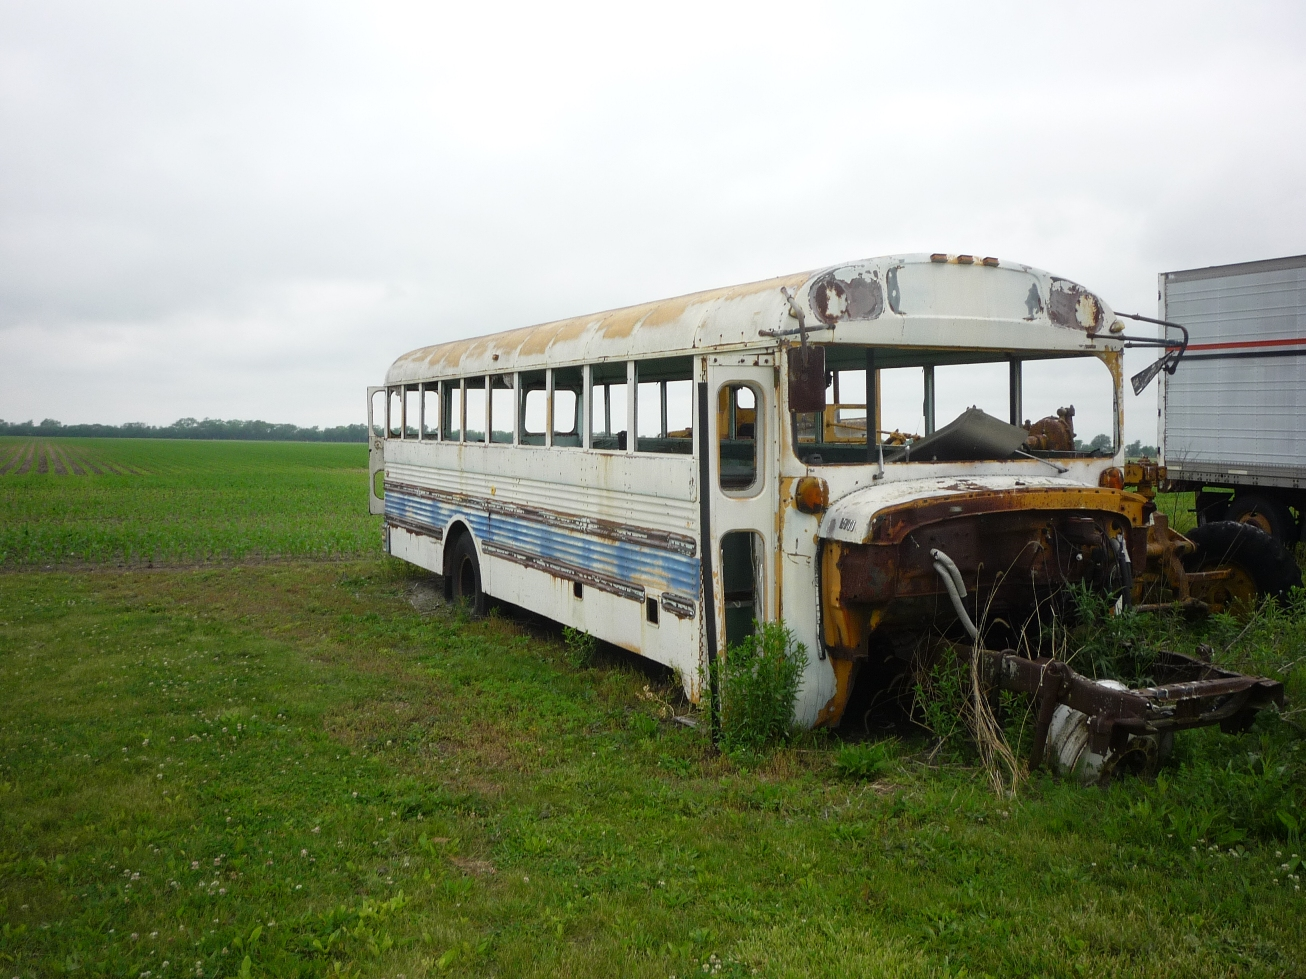 """Abandoned Bus in a Field"" (c) Joanna Key"